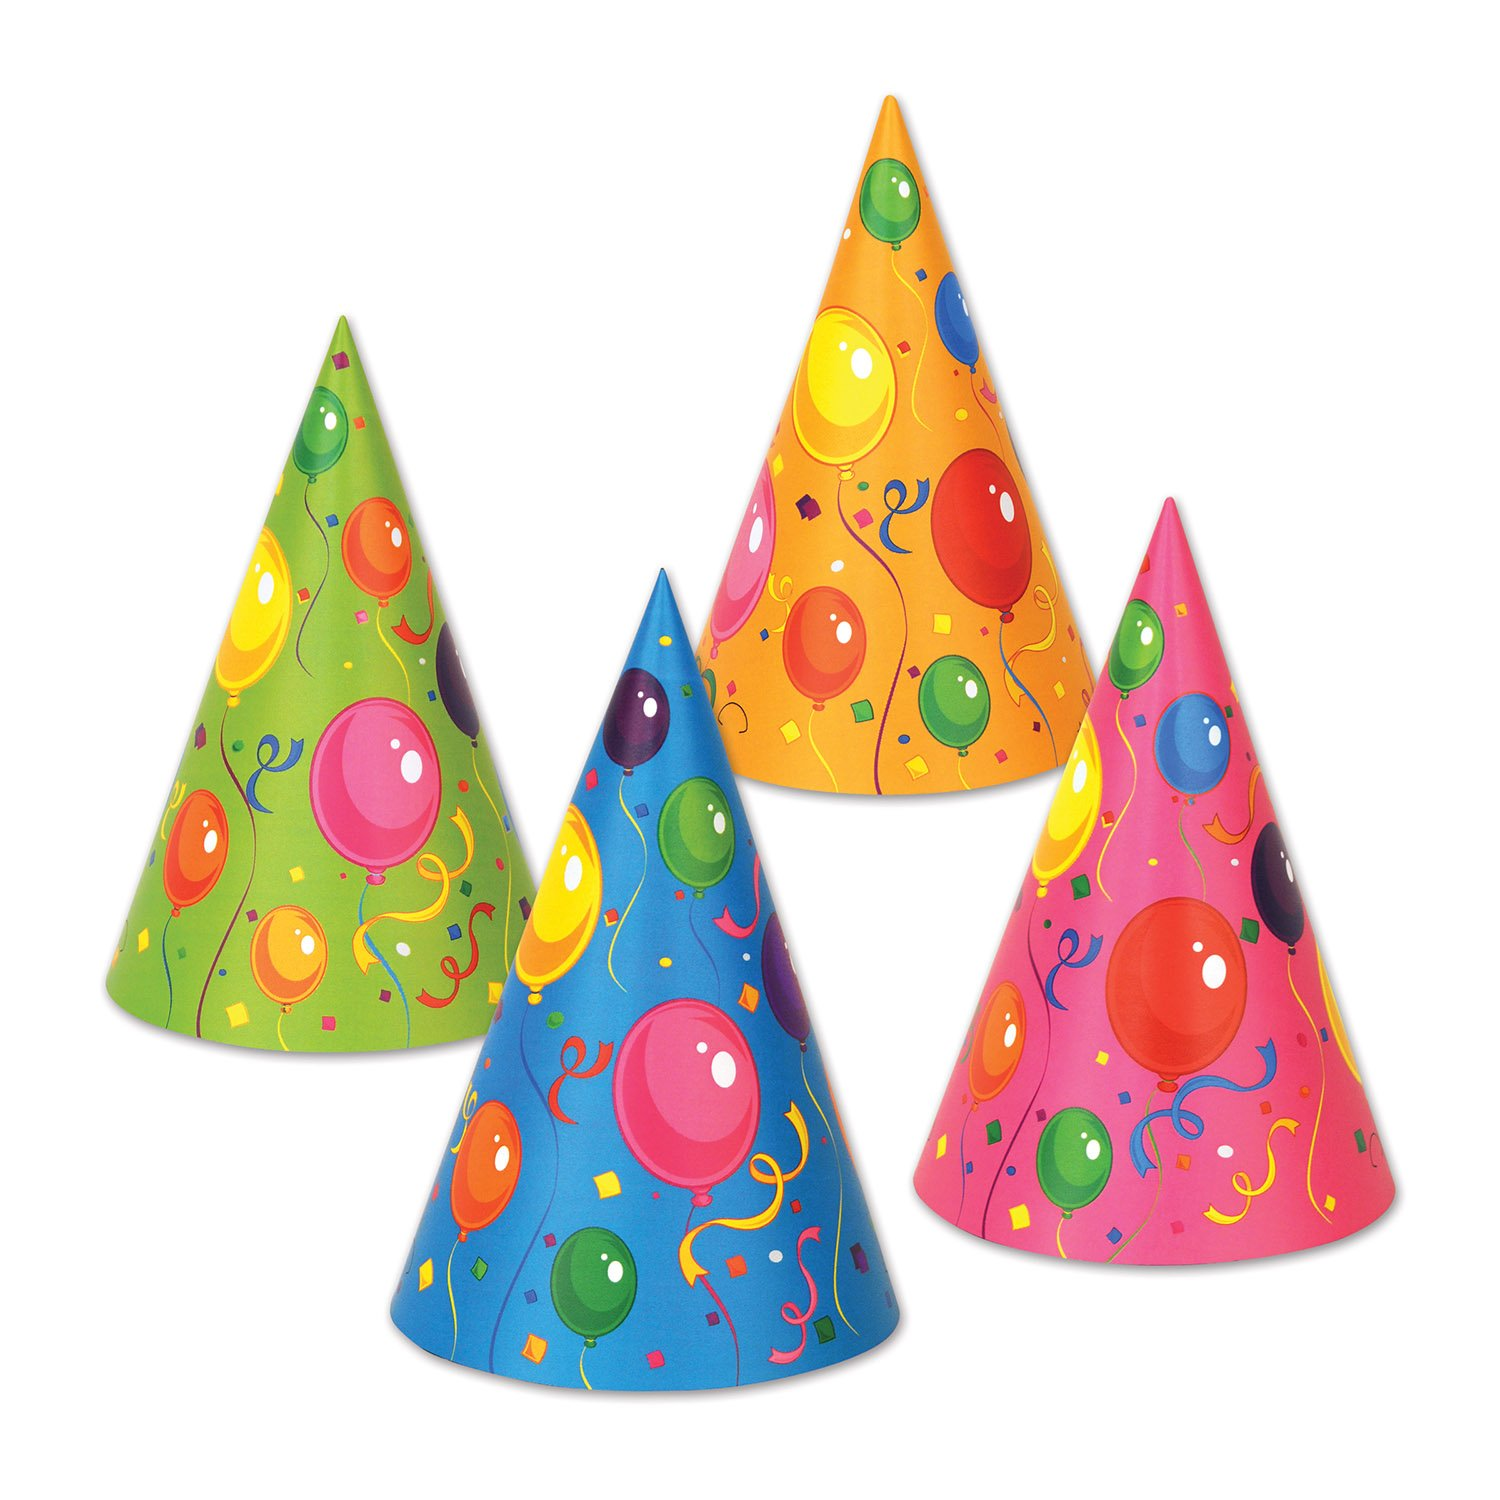 Beistle Fluorescent Cone Hats, 6 1/2-Inch, Multicolor by Beistle